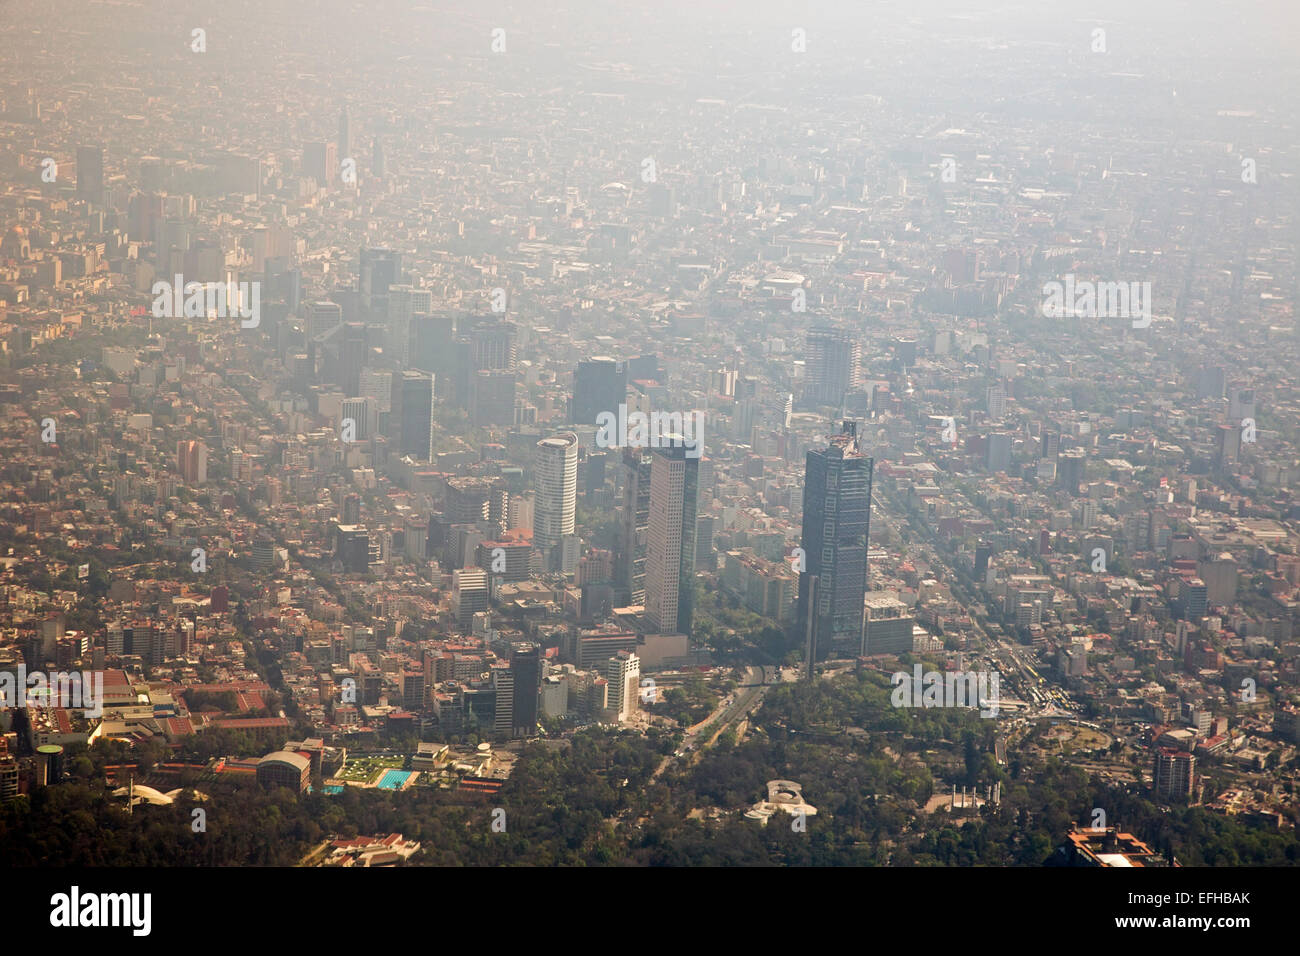 essay on pollution in our city Pollution and its effects print reference air pollution is one of the most common forms of pollution experienced take a look at what our essay writing.